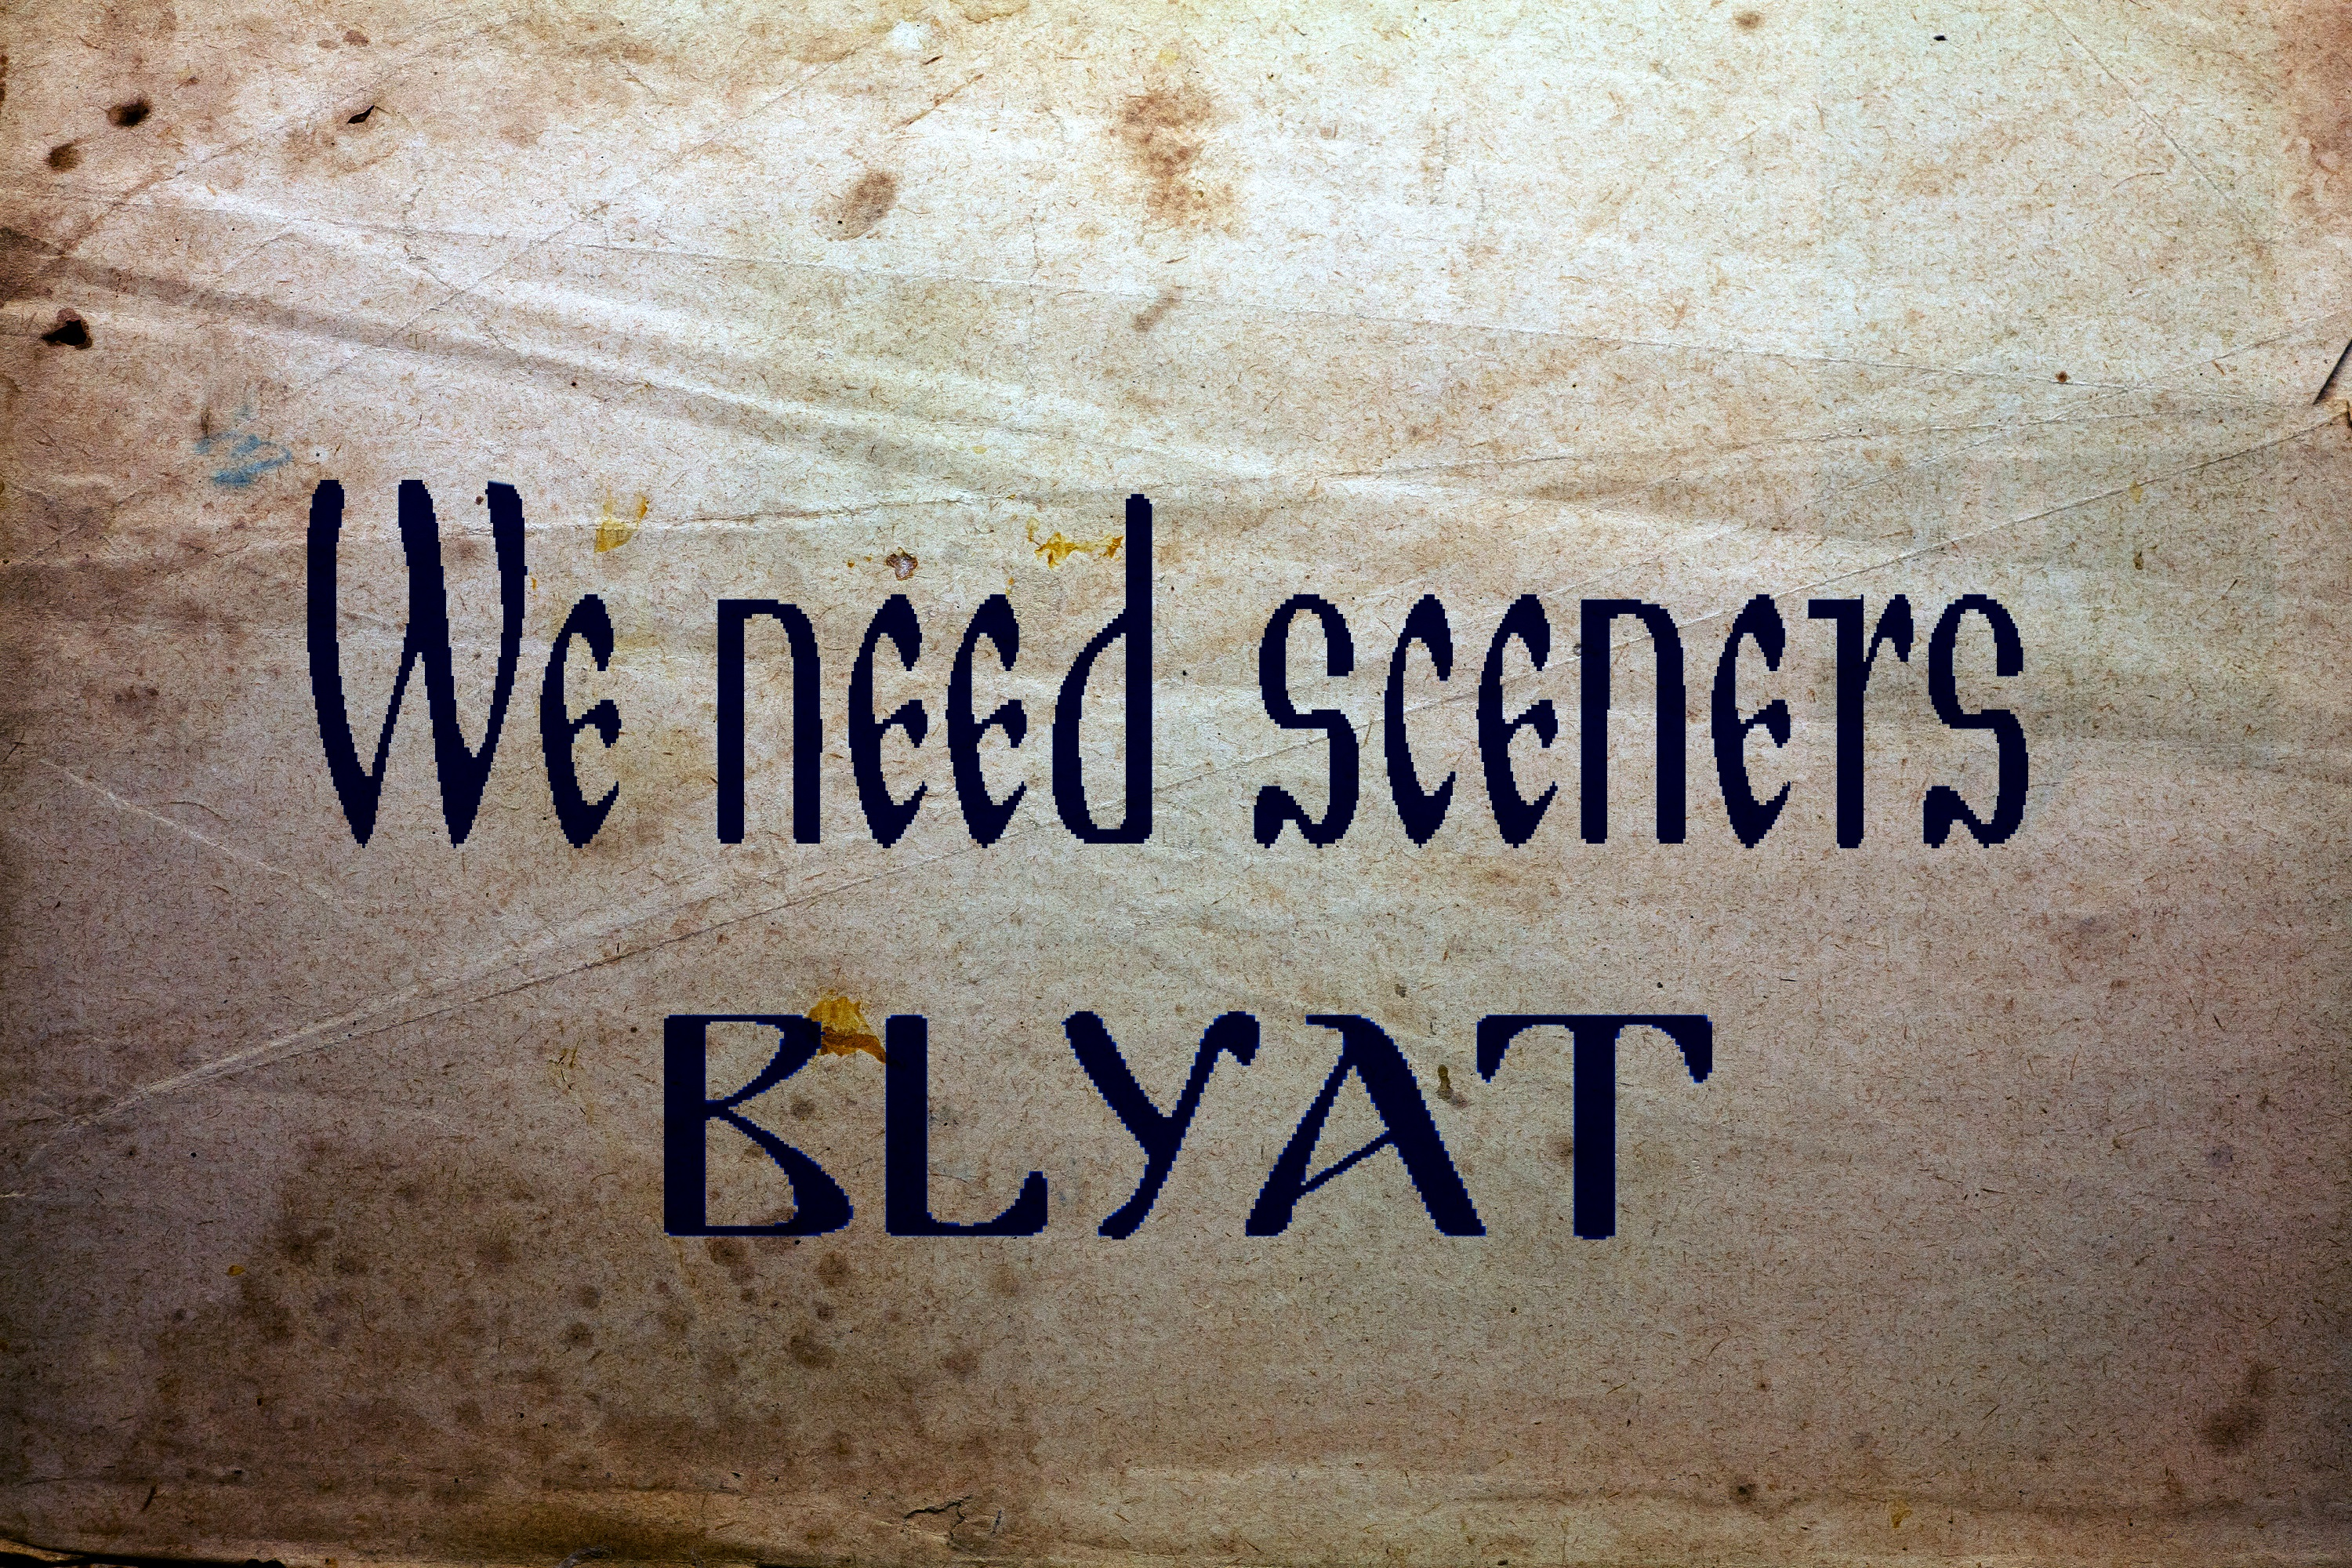 we need sceners blyat